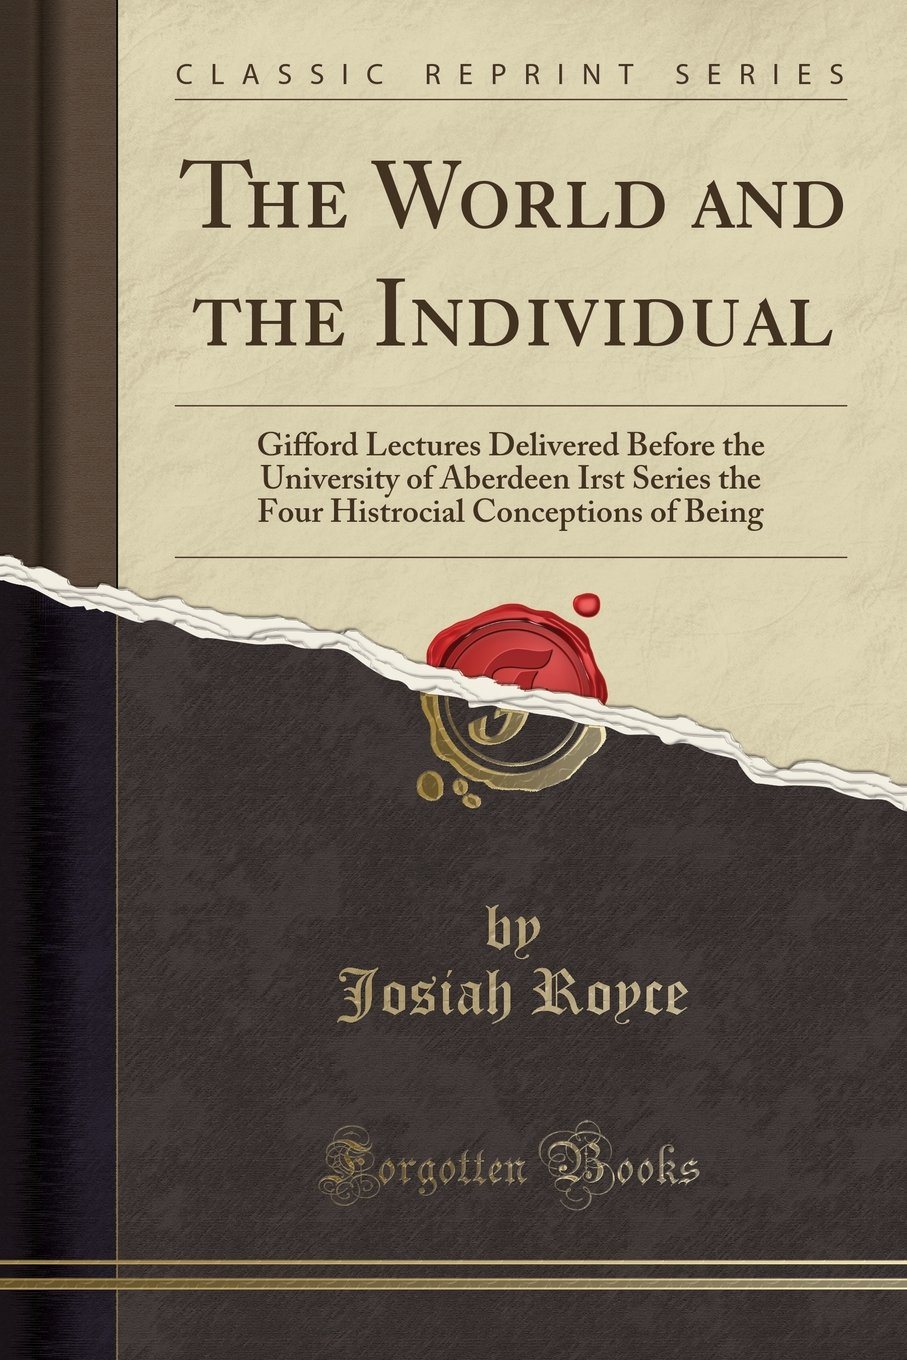 The World and the Individual: Gifford Lectures Delivered Before the University of Aberdeen Irst Series the Four Histrocial Conceptions of Being (Classic Reprint) ebook